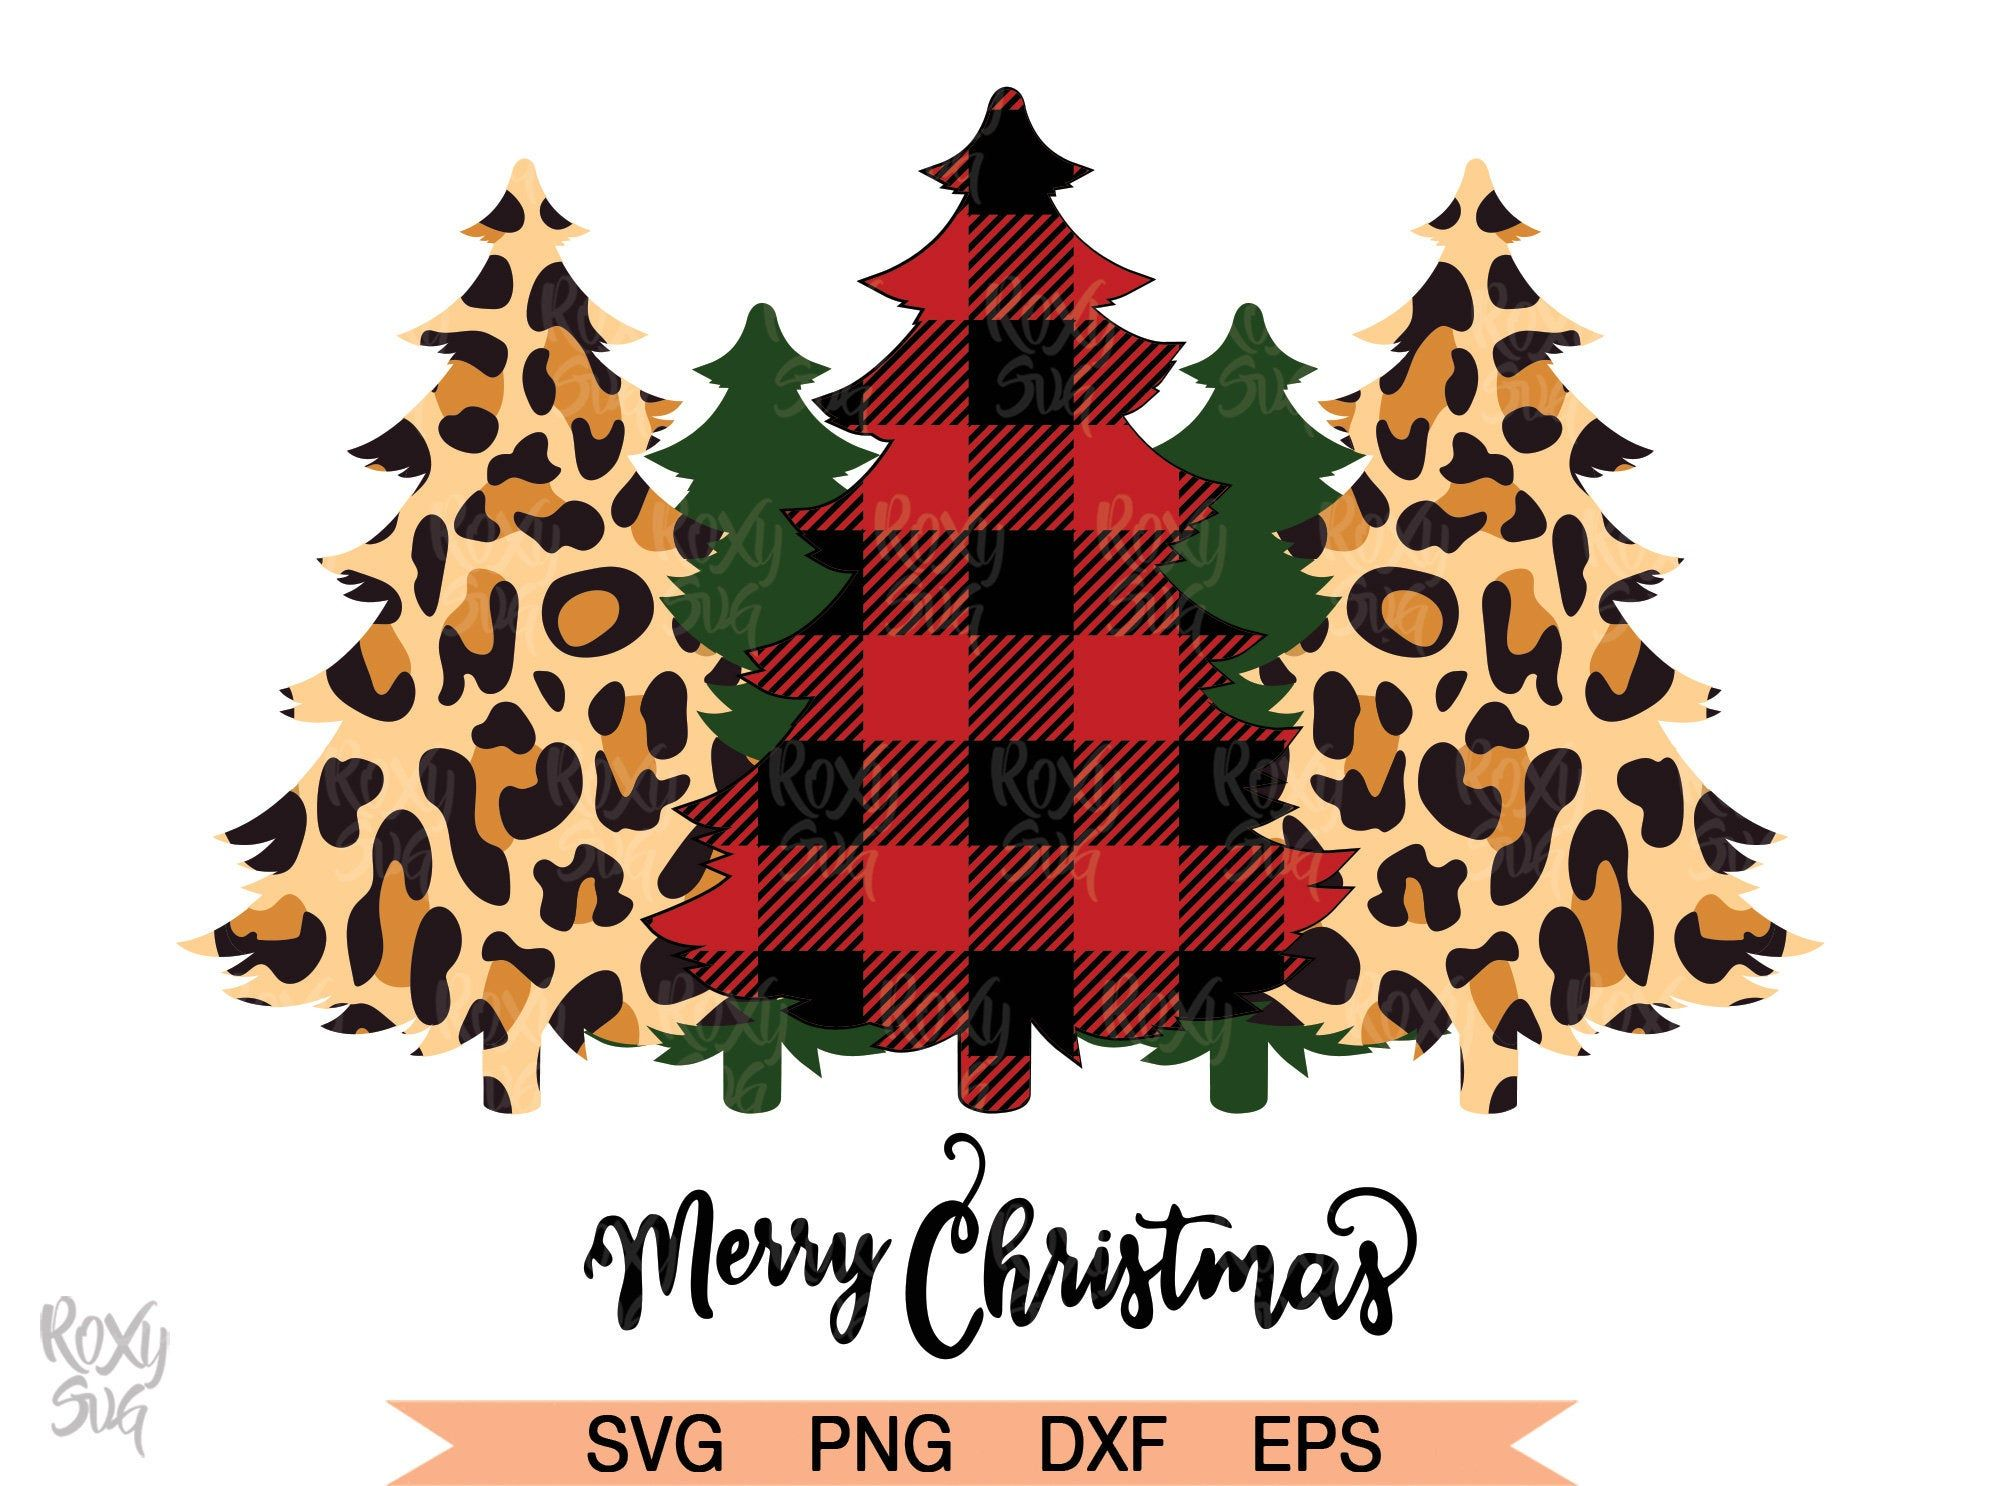 Christmas Tree Svg Buffalo Plaid Trees Svg Christmas Svg Merry Christmas Svg Christmas Clipart Christmas Svg Files For Cricut In 2020 Christmas Svg Christmas Svg Files Tree Svg